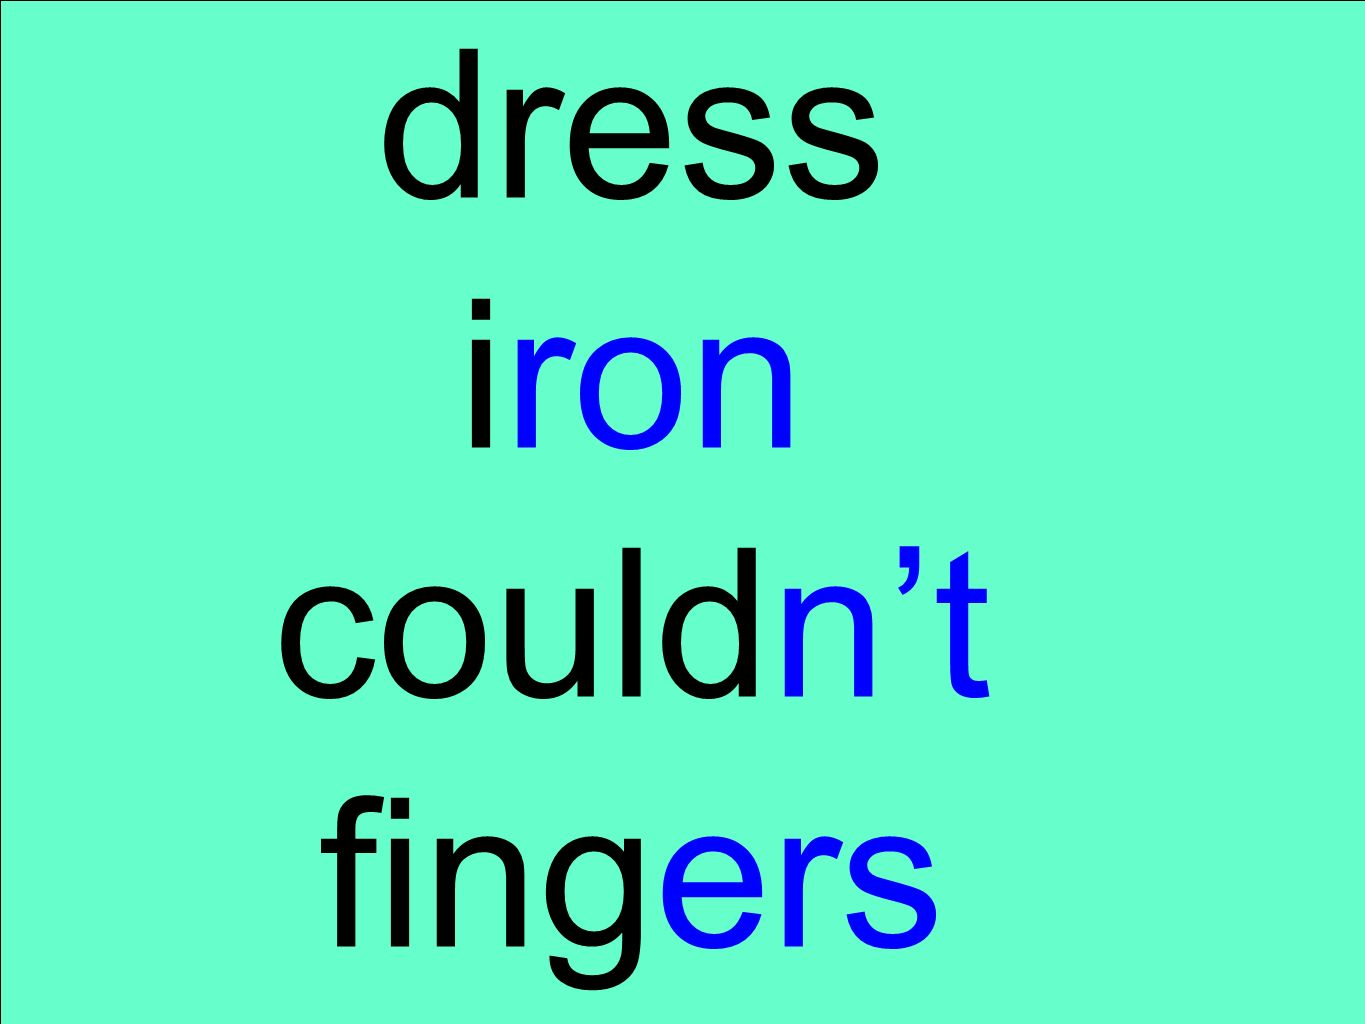 dress iron couldn't fingers